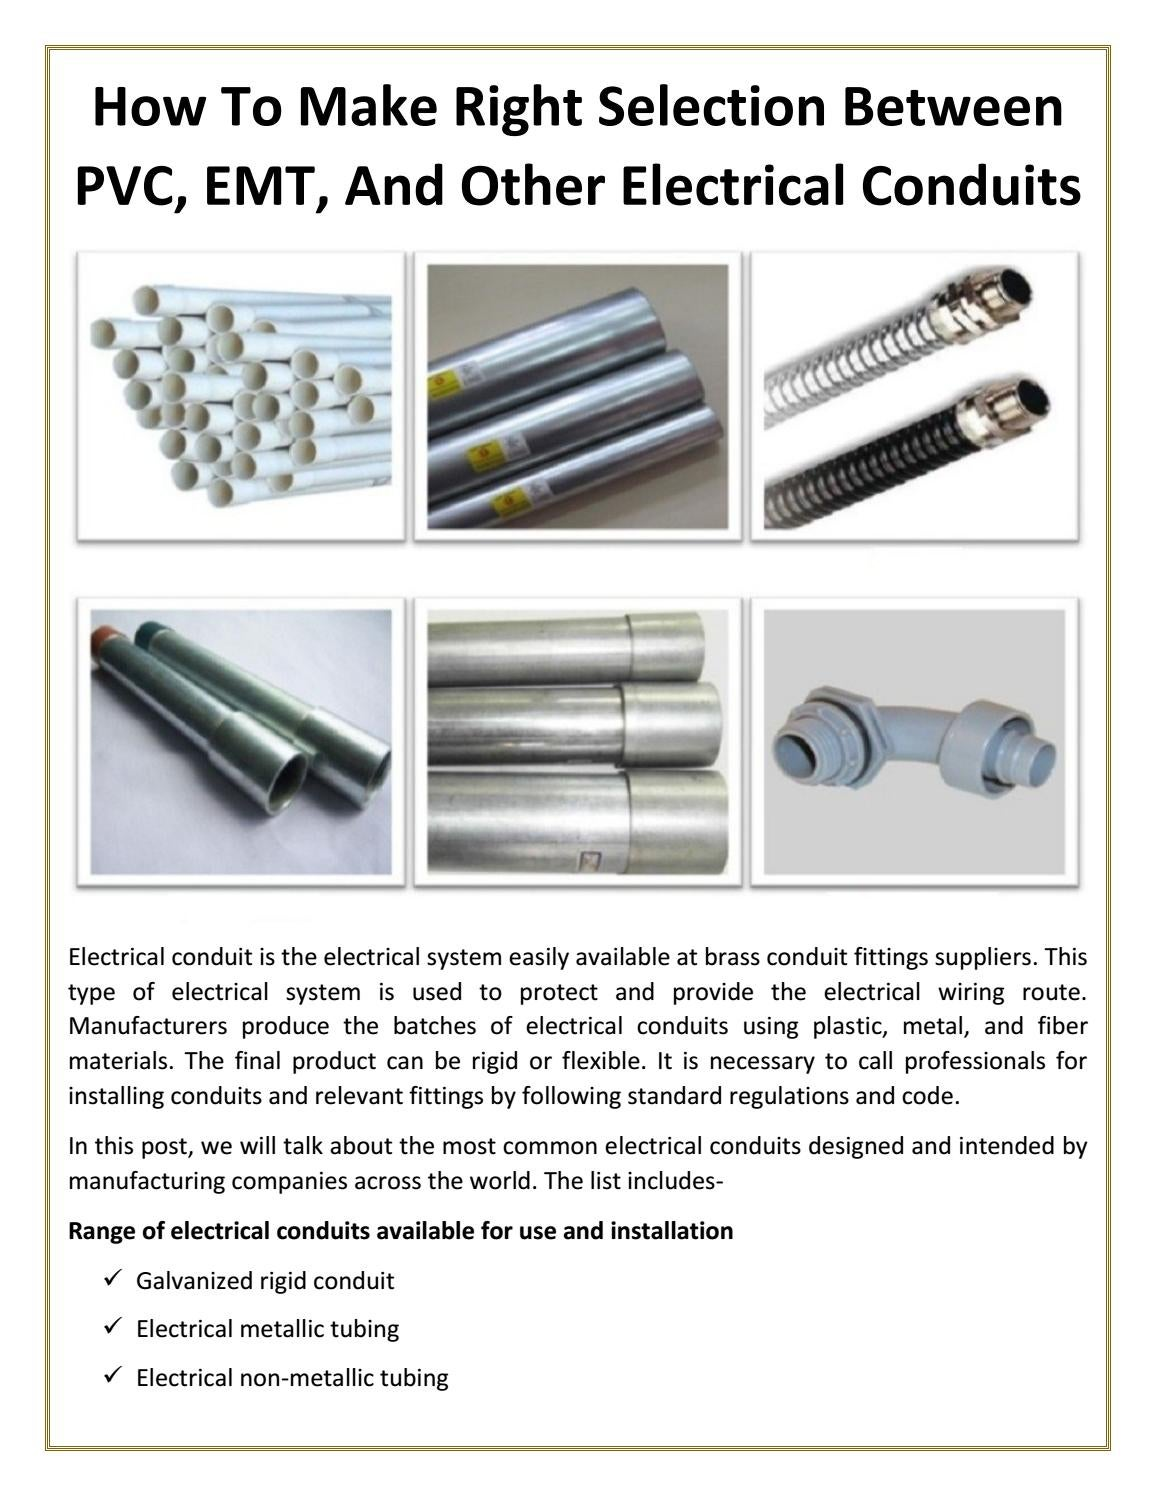 How To Make Right Selection Between Pvc Emt And Other Electrical Conduit Pipe For Electric Wire Protection China Tube Conduits By Pallega Issuu